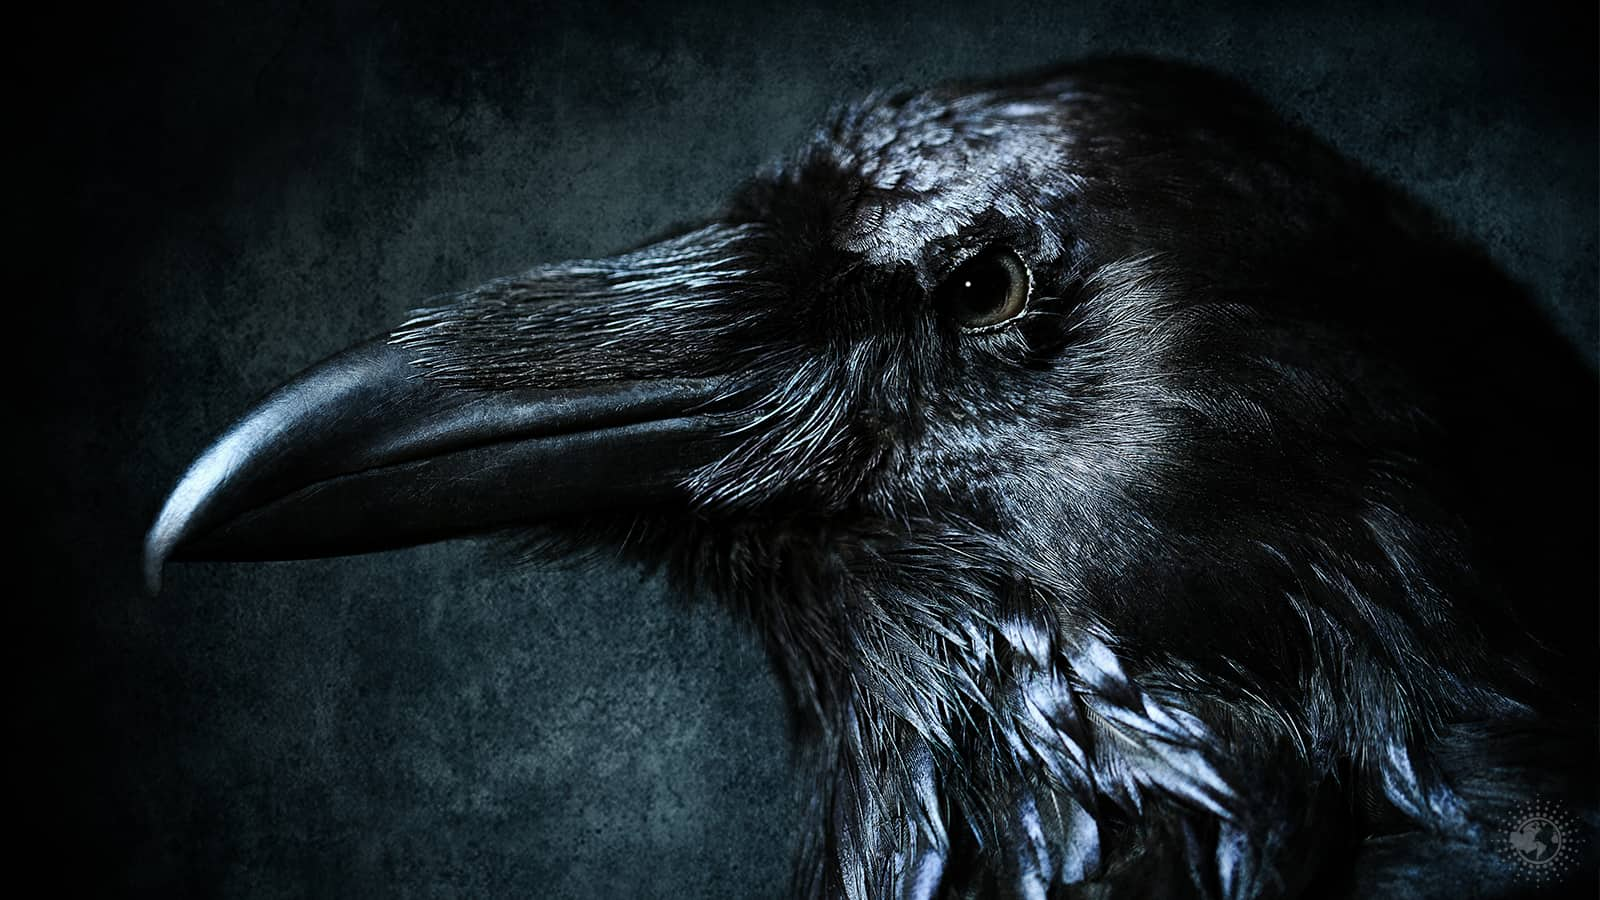 If You See Ravens Often, This Might Be Why